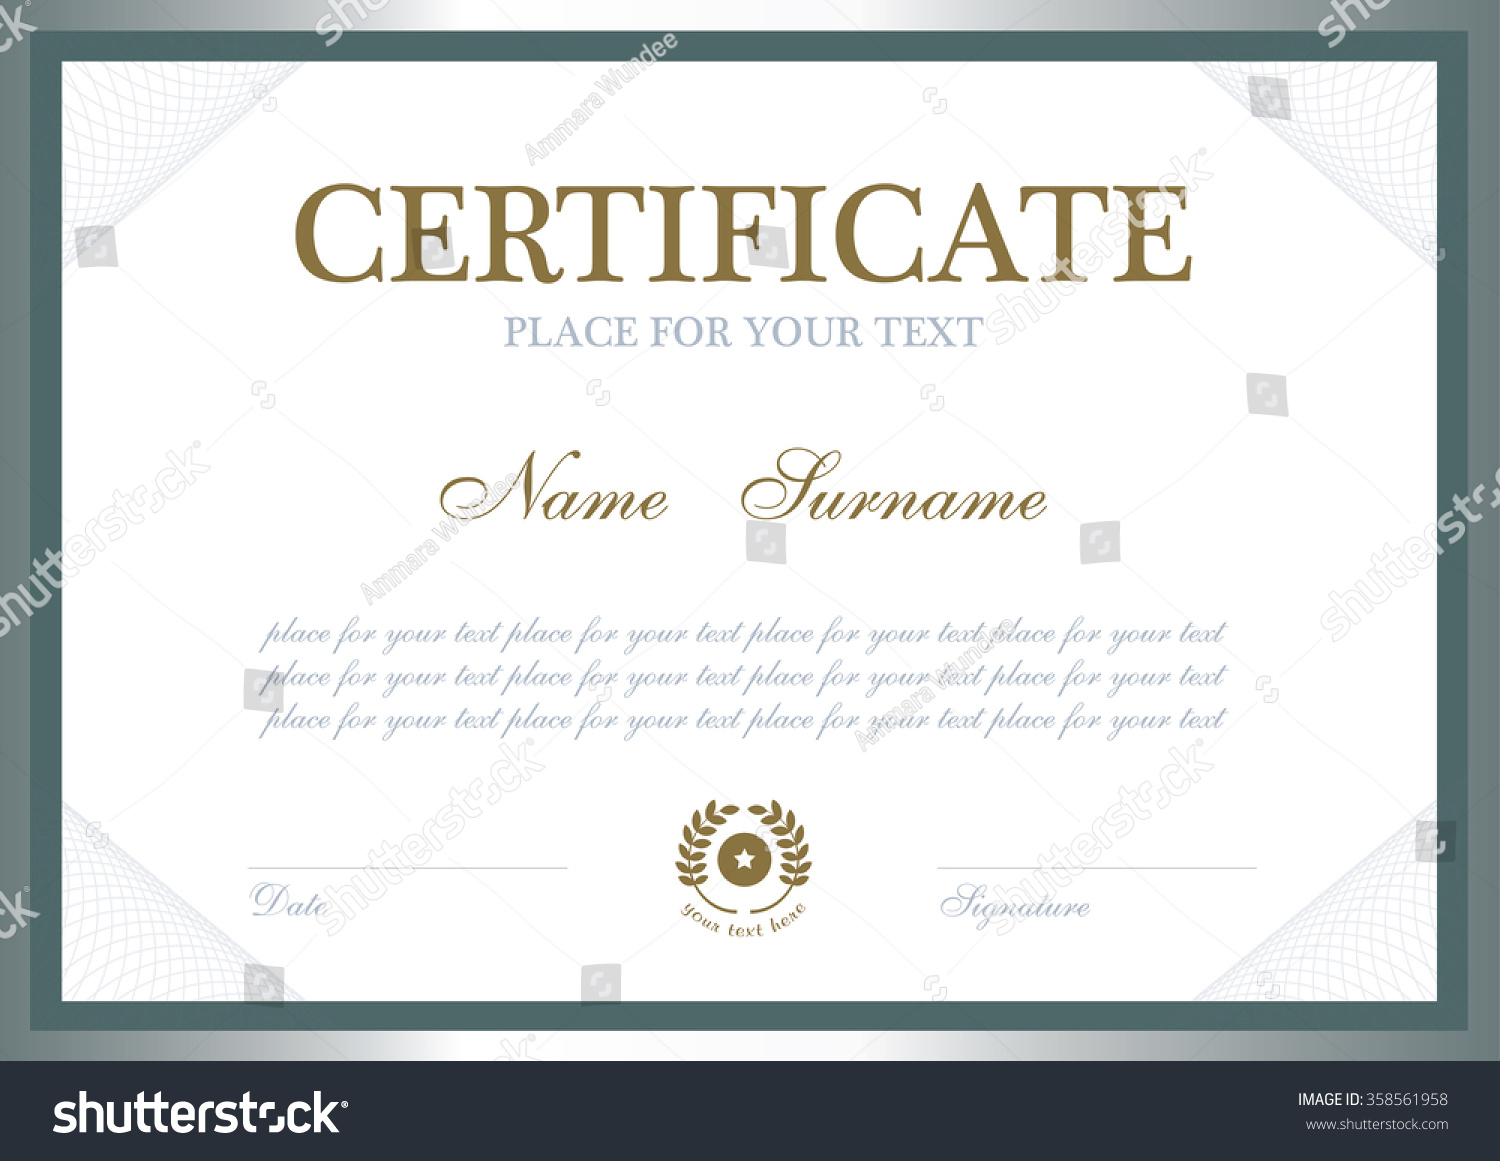 Donation certificate template gallery templates example free business certificate templates donation certificate business business certificate templates donation certificate business certificate templates donation 1betcityfo Image collections